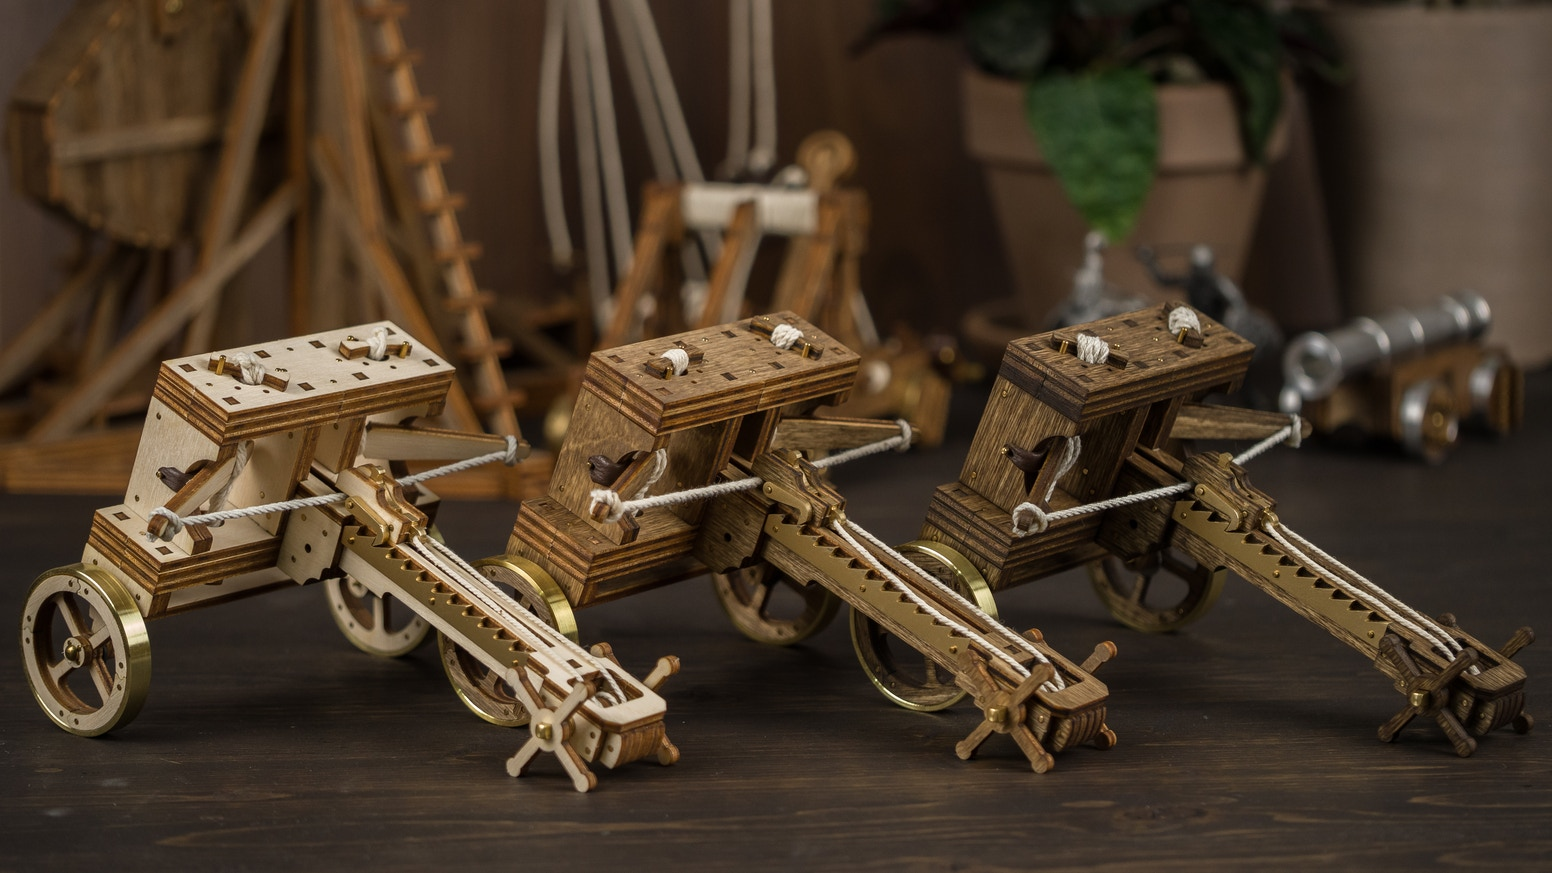 Build your own desktop ballista! Made from real wood and brass.